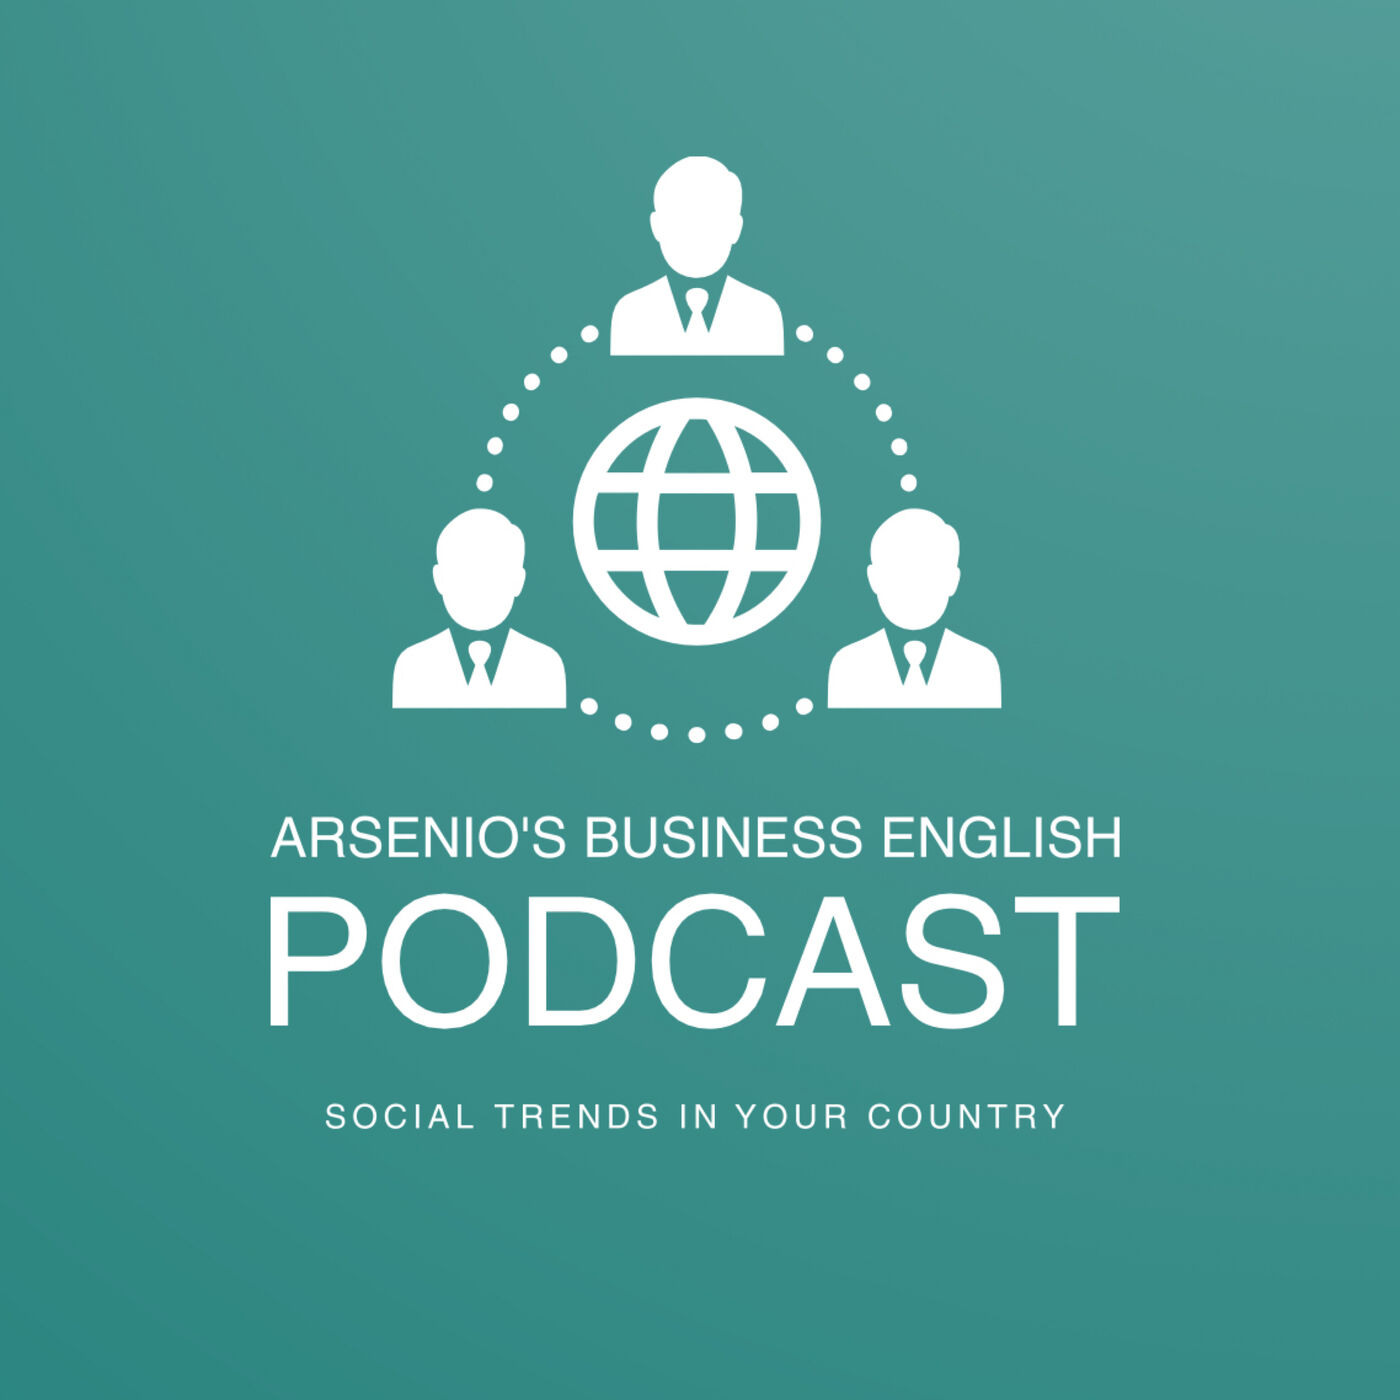 Arsenio's Business English Podcast | Season 6: Episode 29 | Social Trends in Your Country